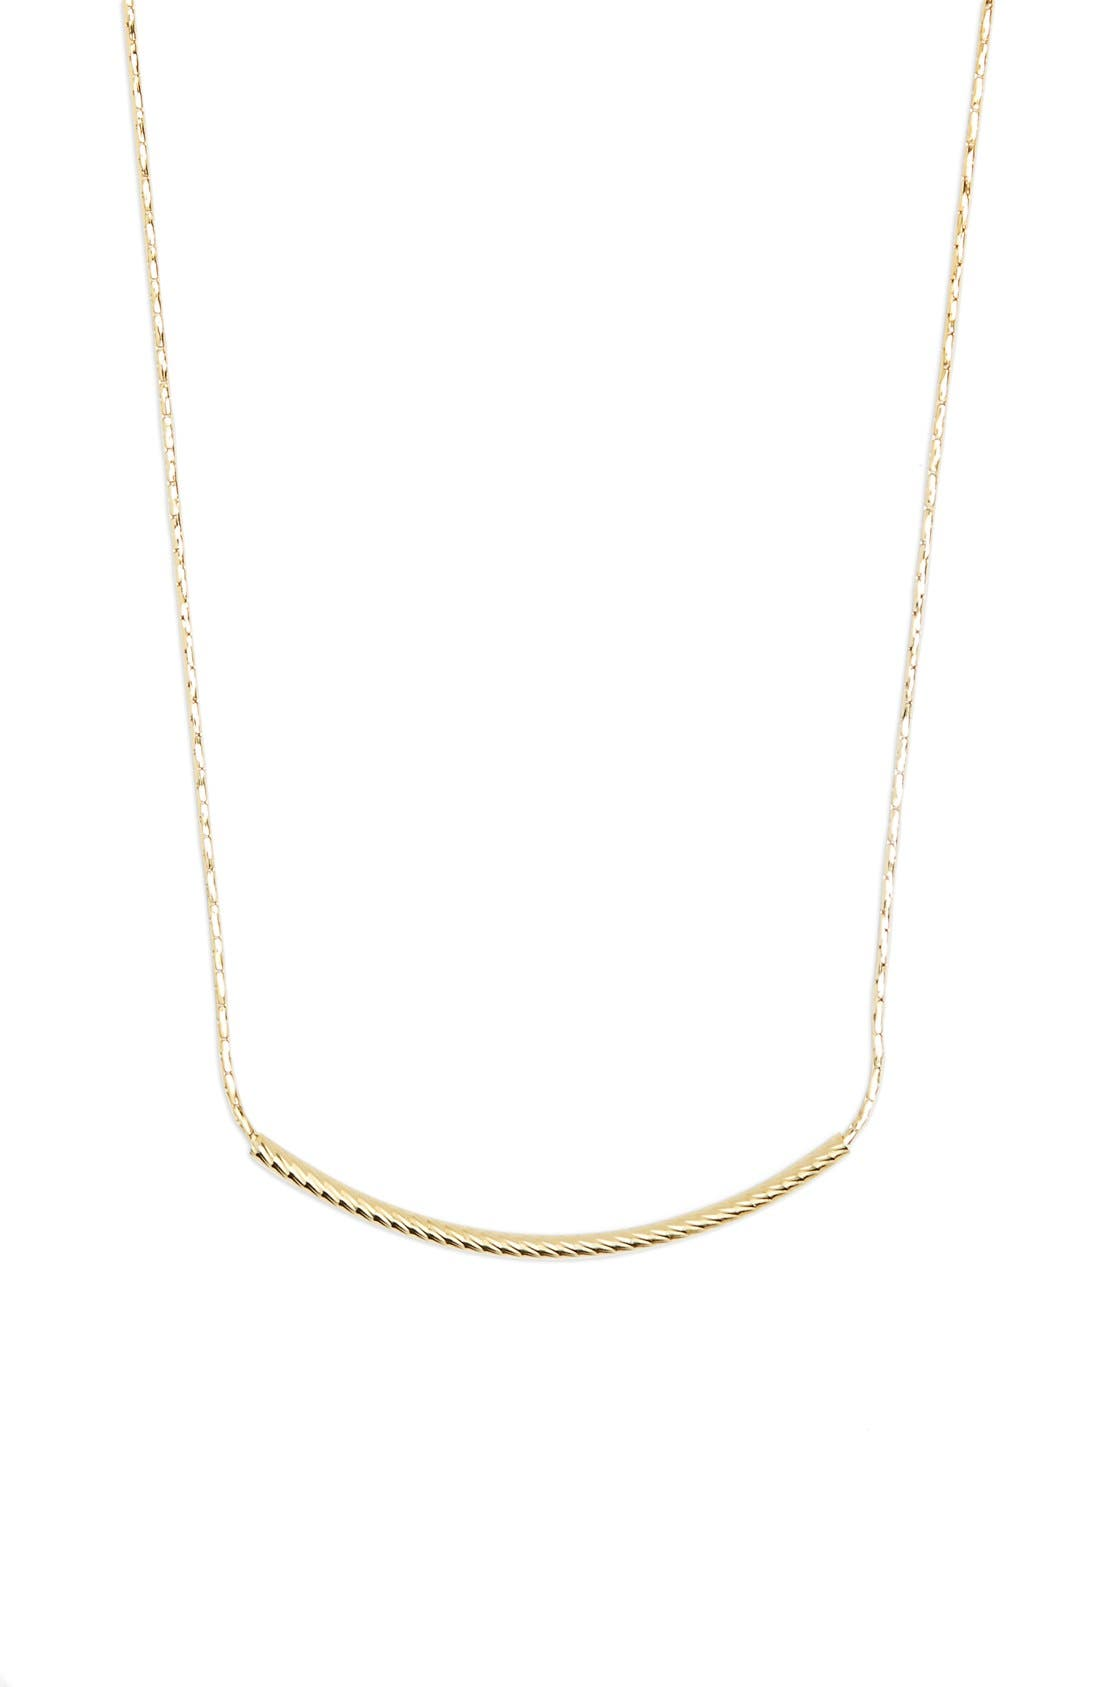 14kGold Curved Bar Necklace,                         Main,                         color, Yellow Gold